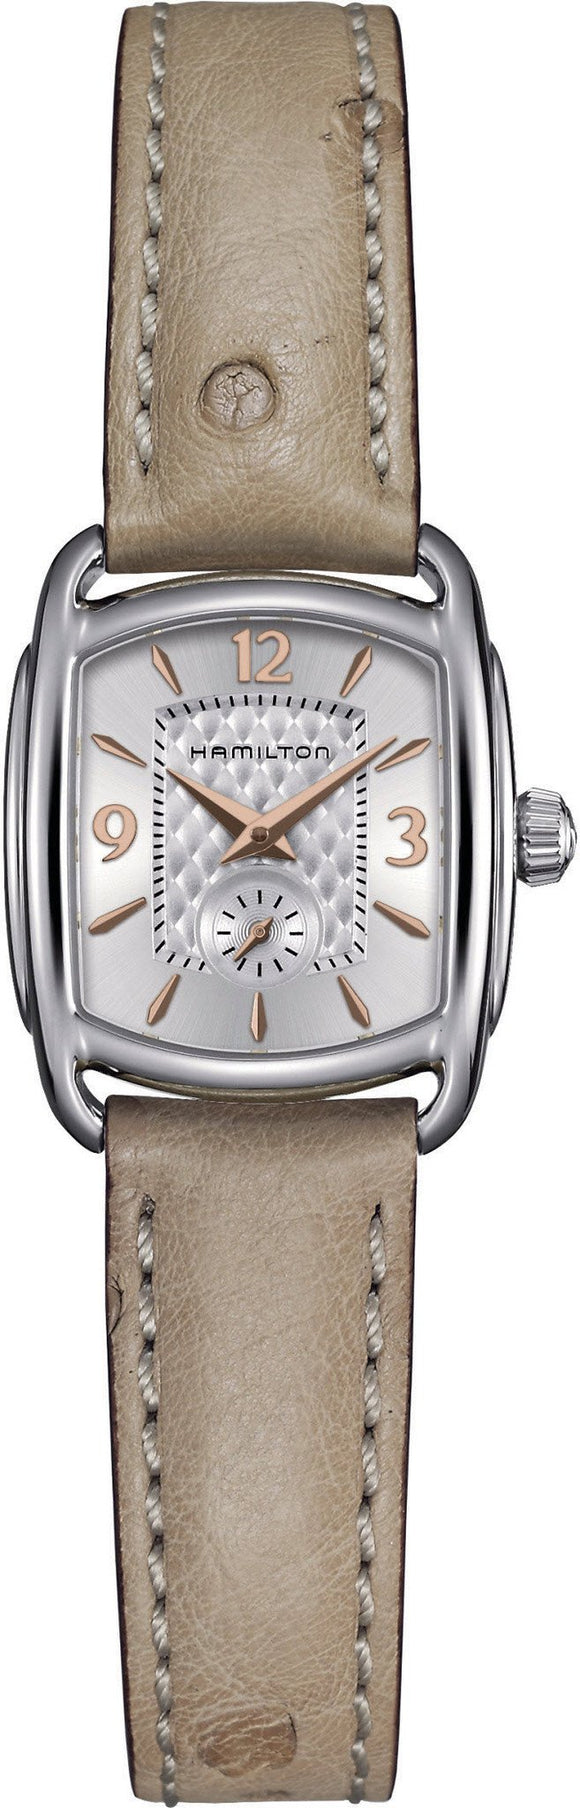 Hamilton Watch Bagley H12351855